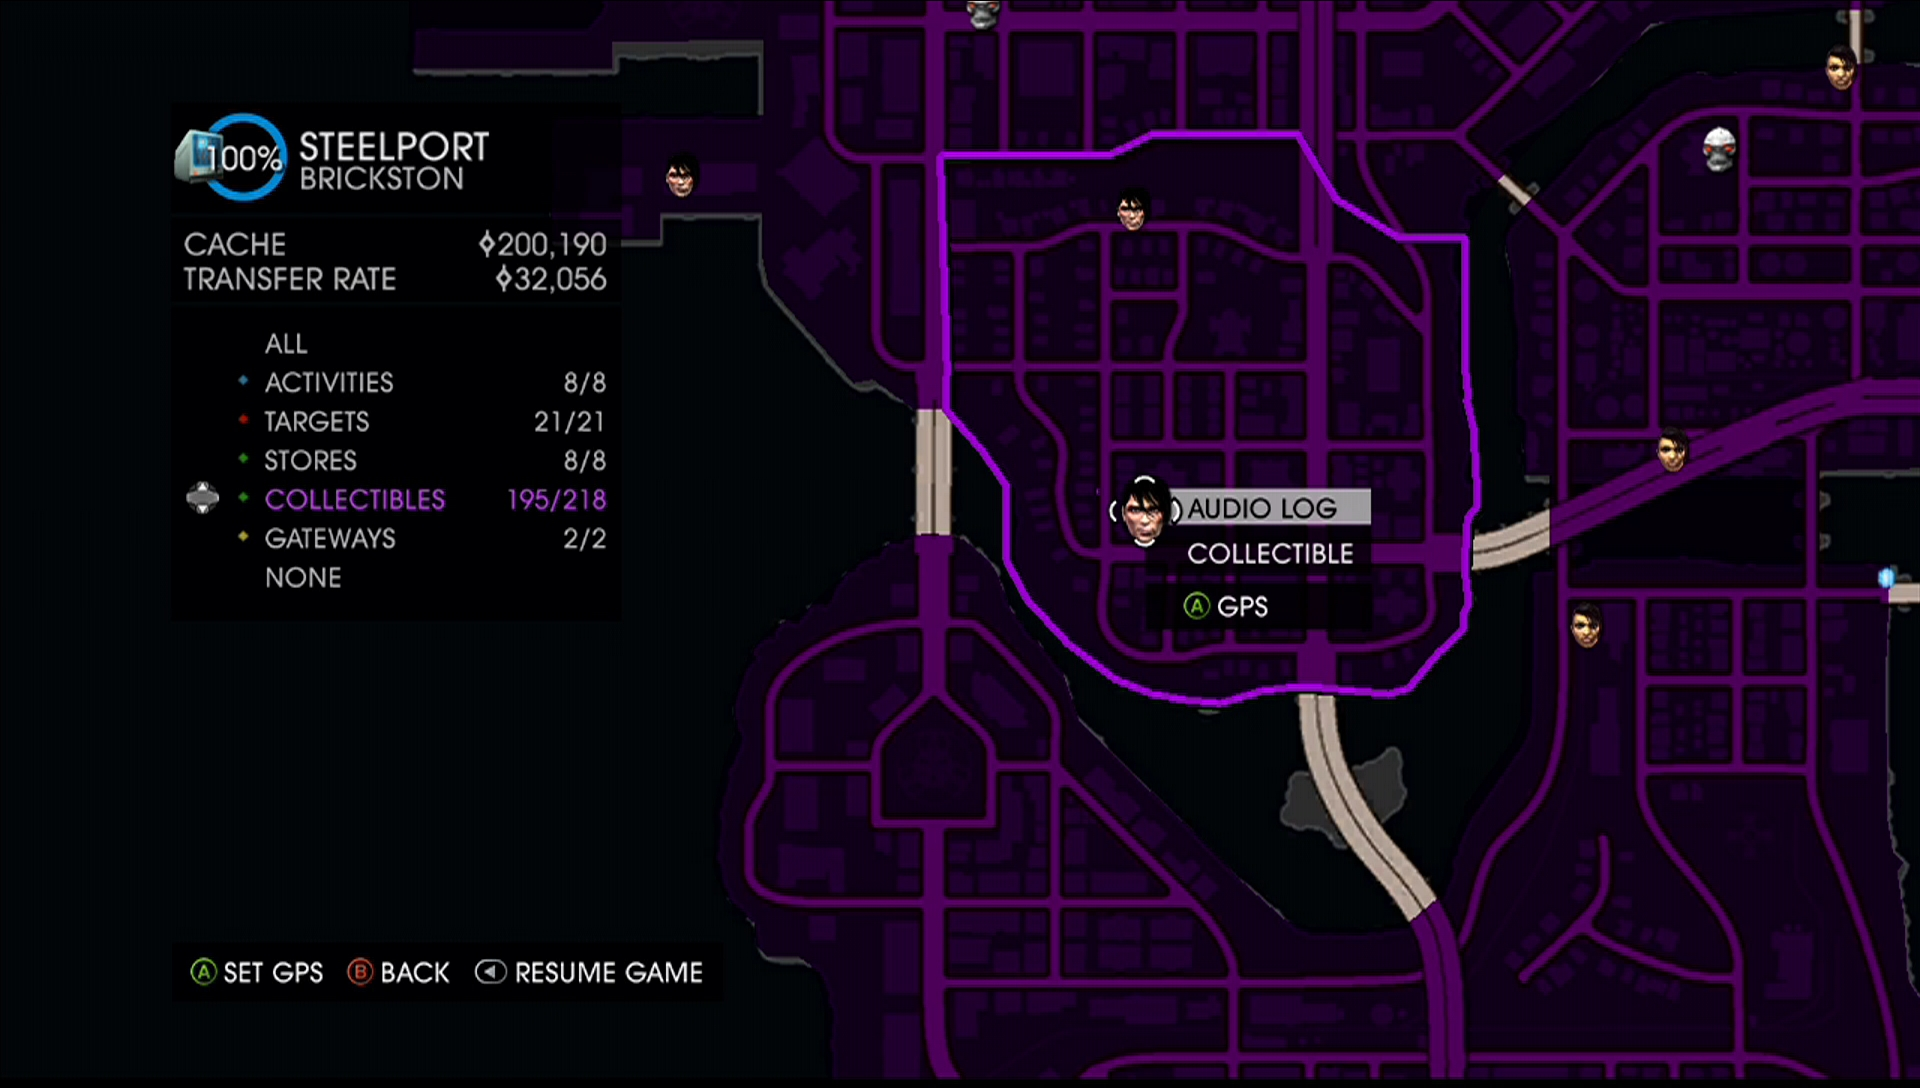 CCC: Saints Row IV Guide/Walkthrough - Audio Logs on overgrowth map, samurai warriors 2 empires map, resident evil outbreak map, grand theft auto map, the elder scrolls 2 map, saints row 4 map locations, saints row 3 map, uncharted 2 map, mega man battle network map, puzzle quest 2 map, tales of graces map, the sims 2 map, just cause 2 map, transformers revenge of the fallen map, skyrim map, call of juarez map, saints row 5 map, xcom 2 map, saints row tag location map, saints row 1 map,